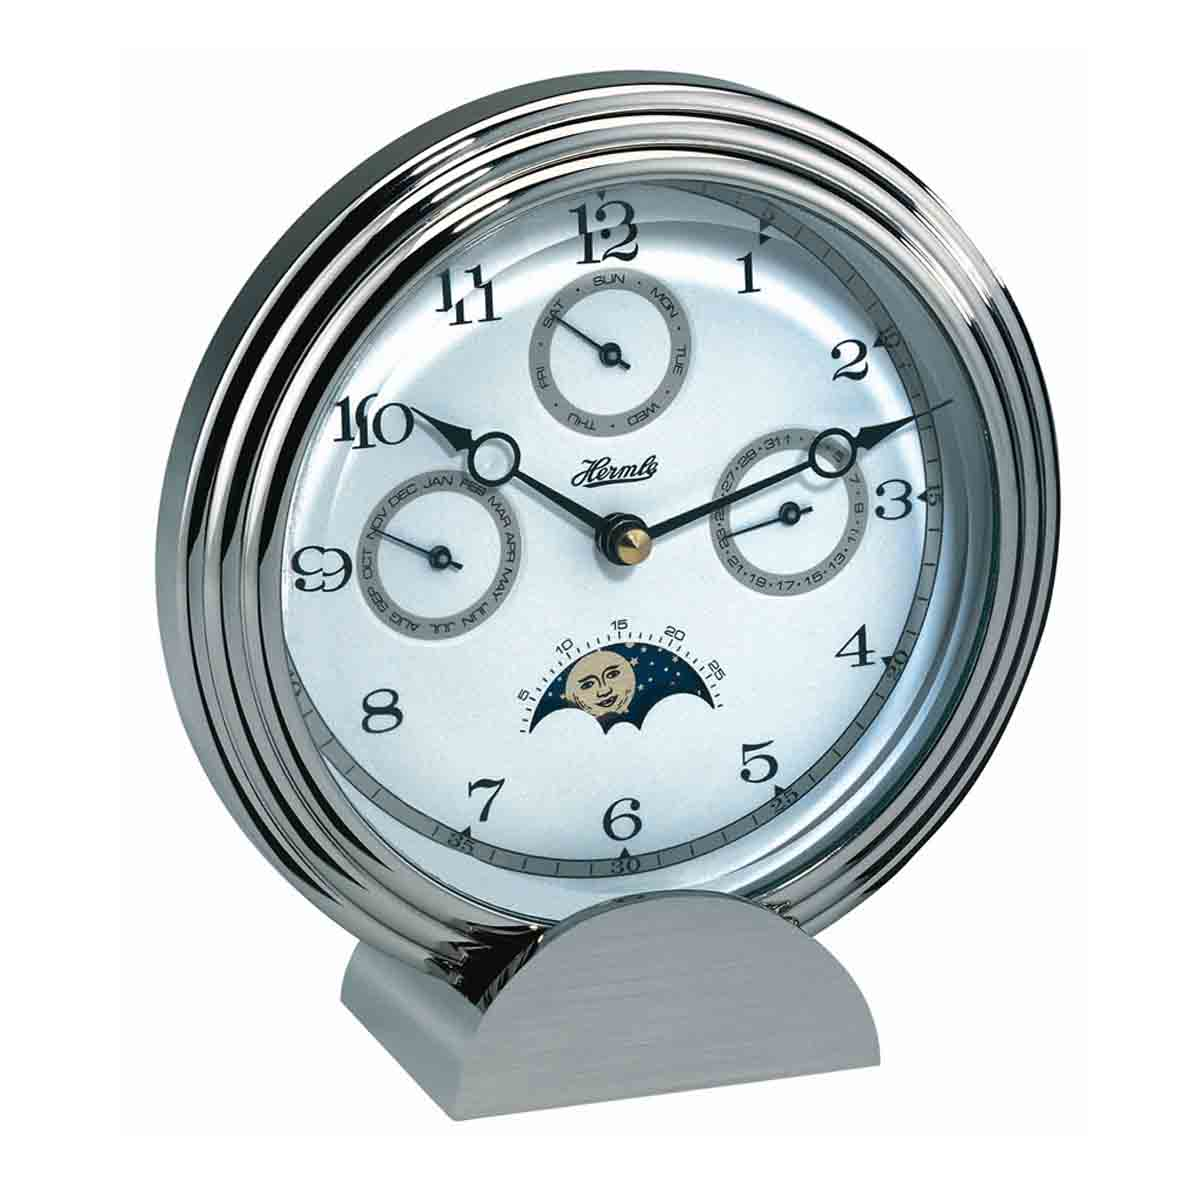 STOCKTON 22961 002100 Chrome Mantel Table Clock